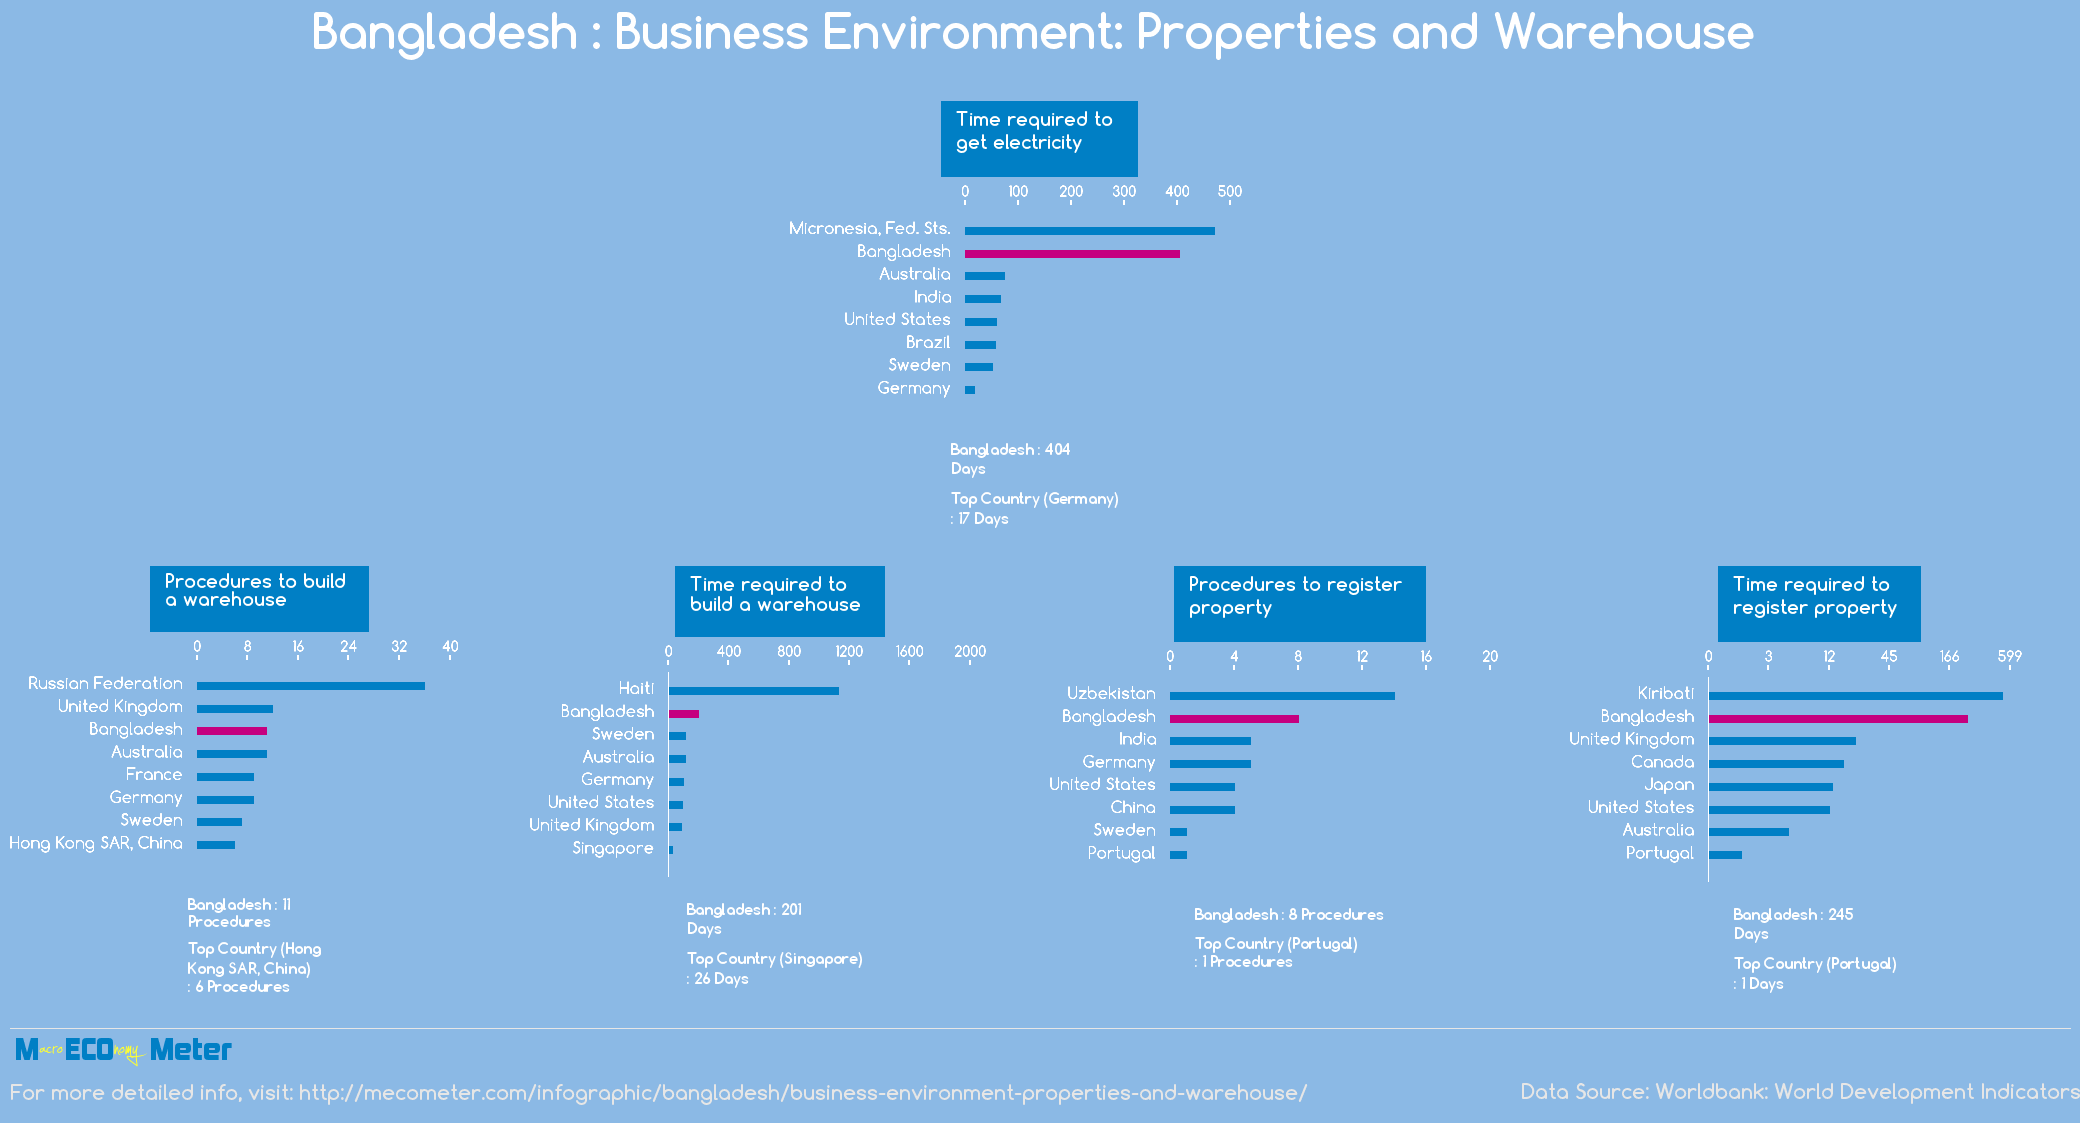 Bangladesh : Business Environment: Properties and Warehouse